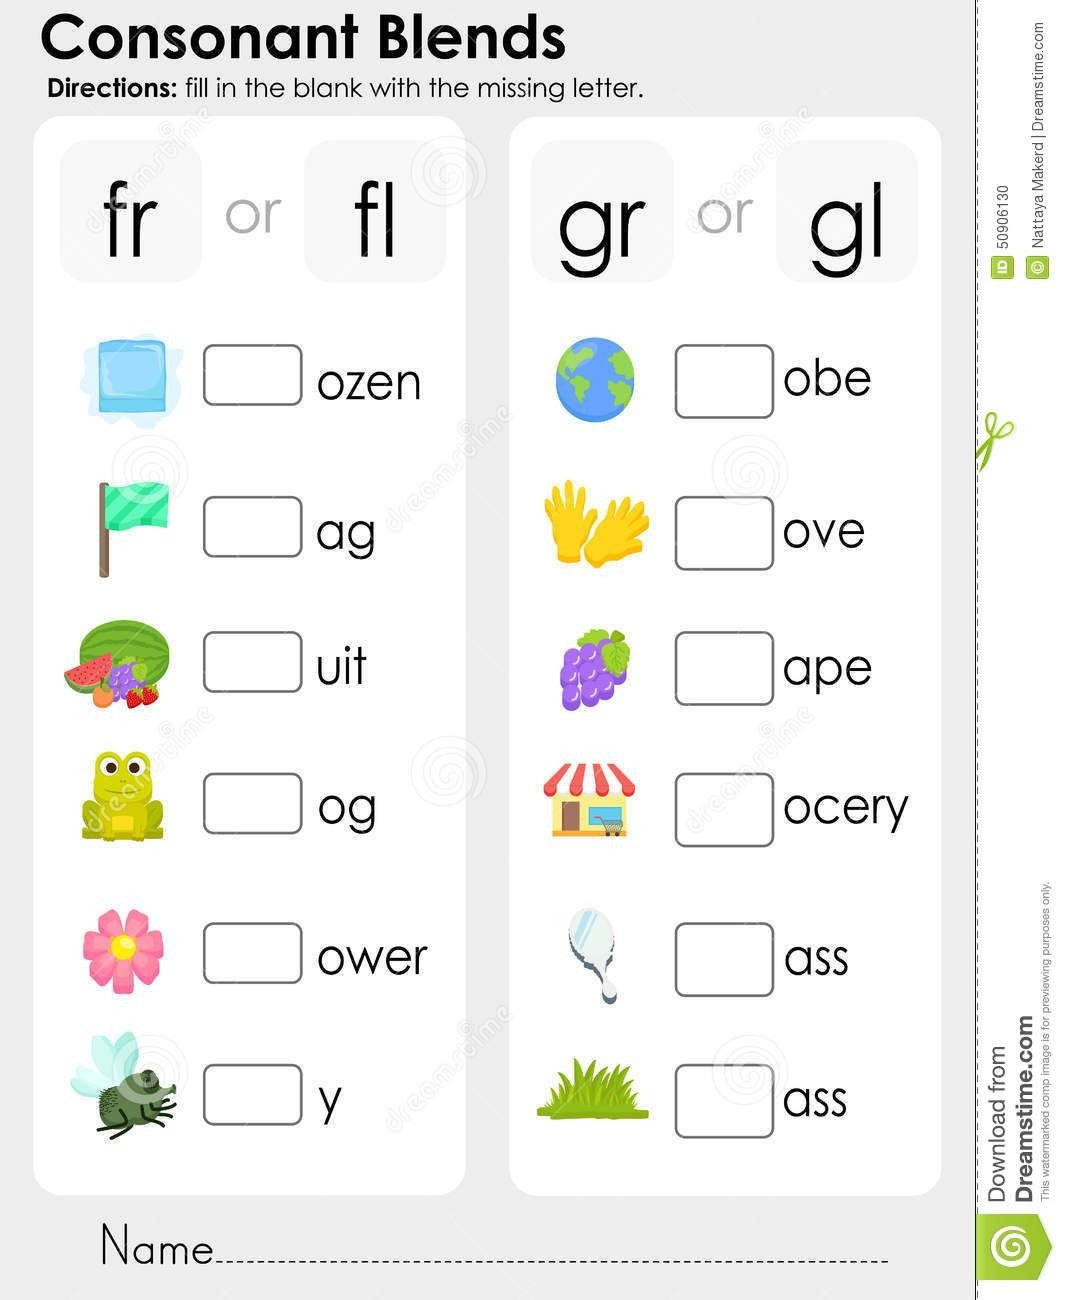 Consonant Blends Worksheets for Kindergarten Consonant Blends Missing Letter Worksheet for Education